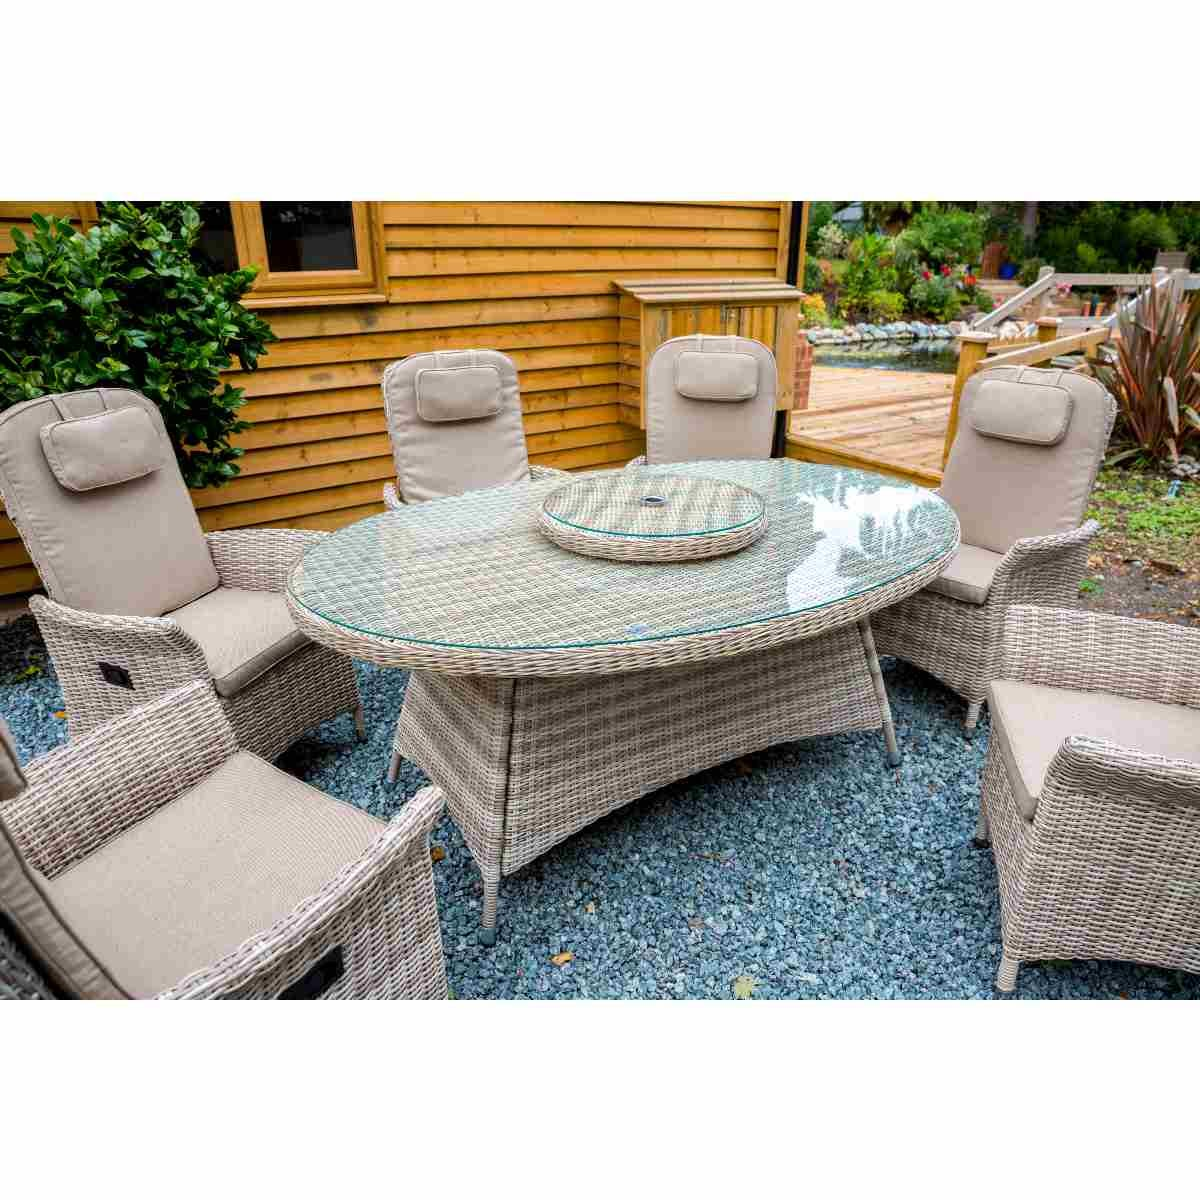 Katie Blake Flamingo 6 Reclining Chair Dining Set with 1.45m x 2.1m Oval Table Parasol & Base - Natural / Taupe